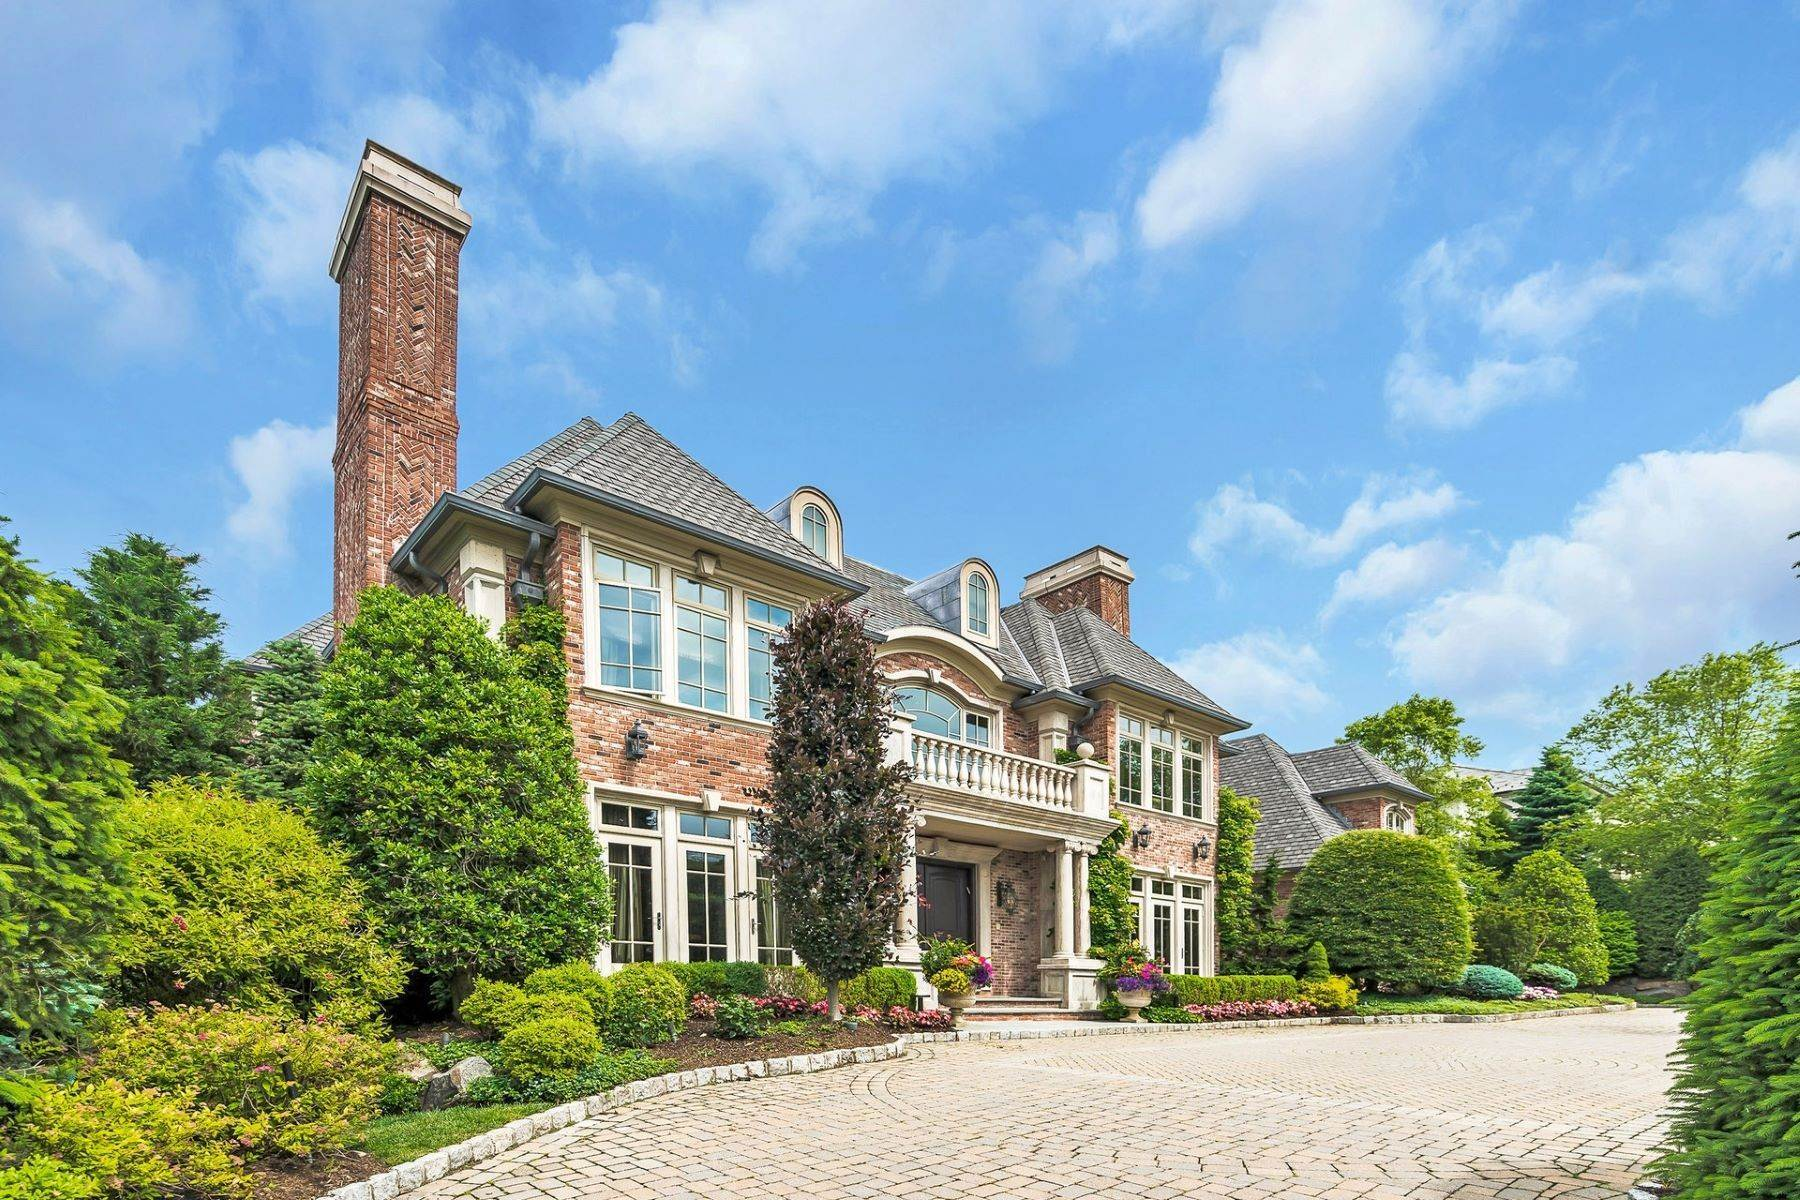 Single Family Homes for Sale at Extraordinary Manor Estate 129 Truman Dr Cresskill, New Jersey 07626 United States